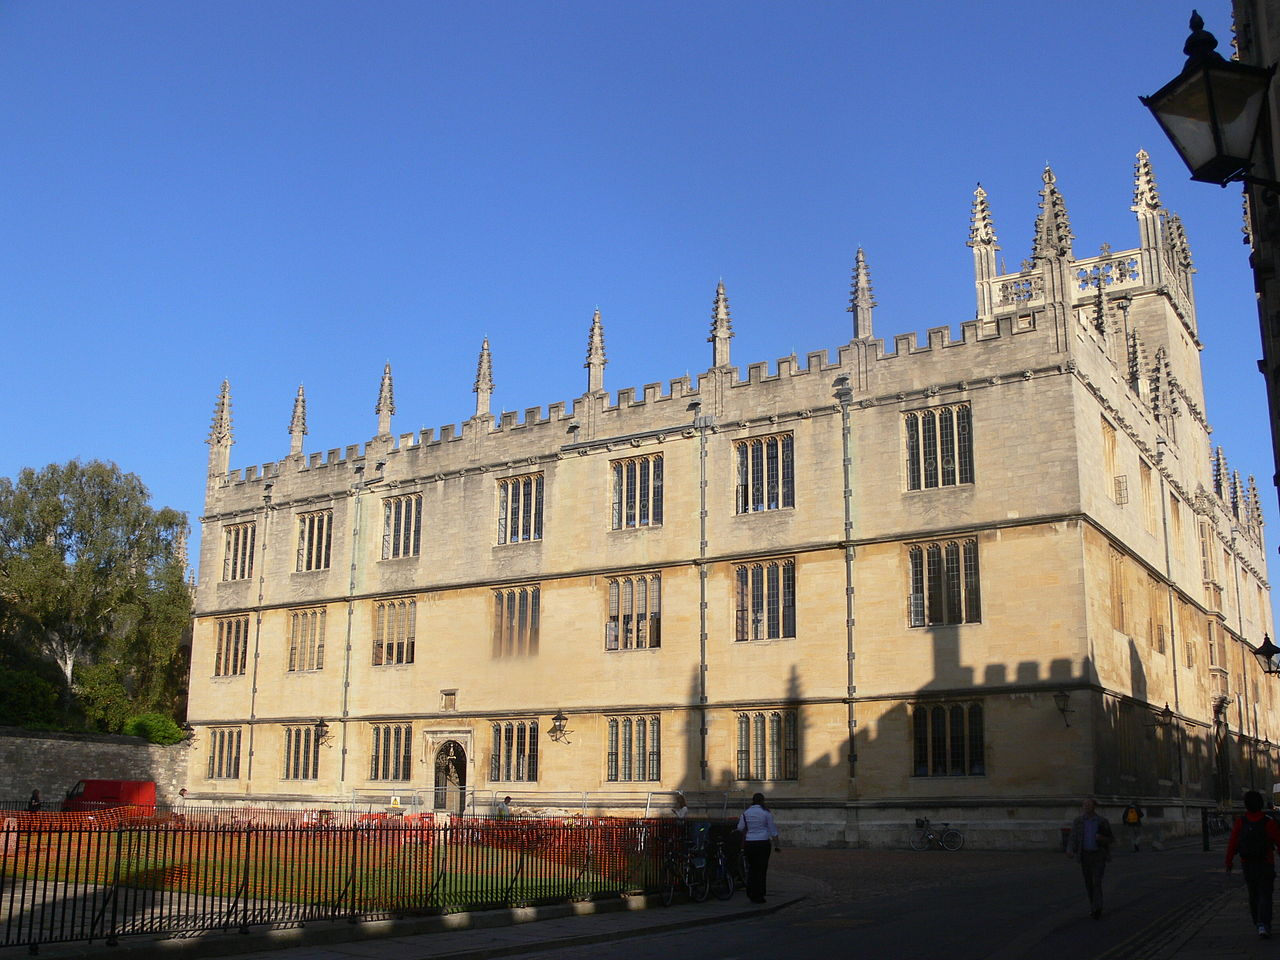 Exterior of the Bodleian Library in Oxford